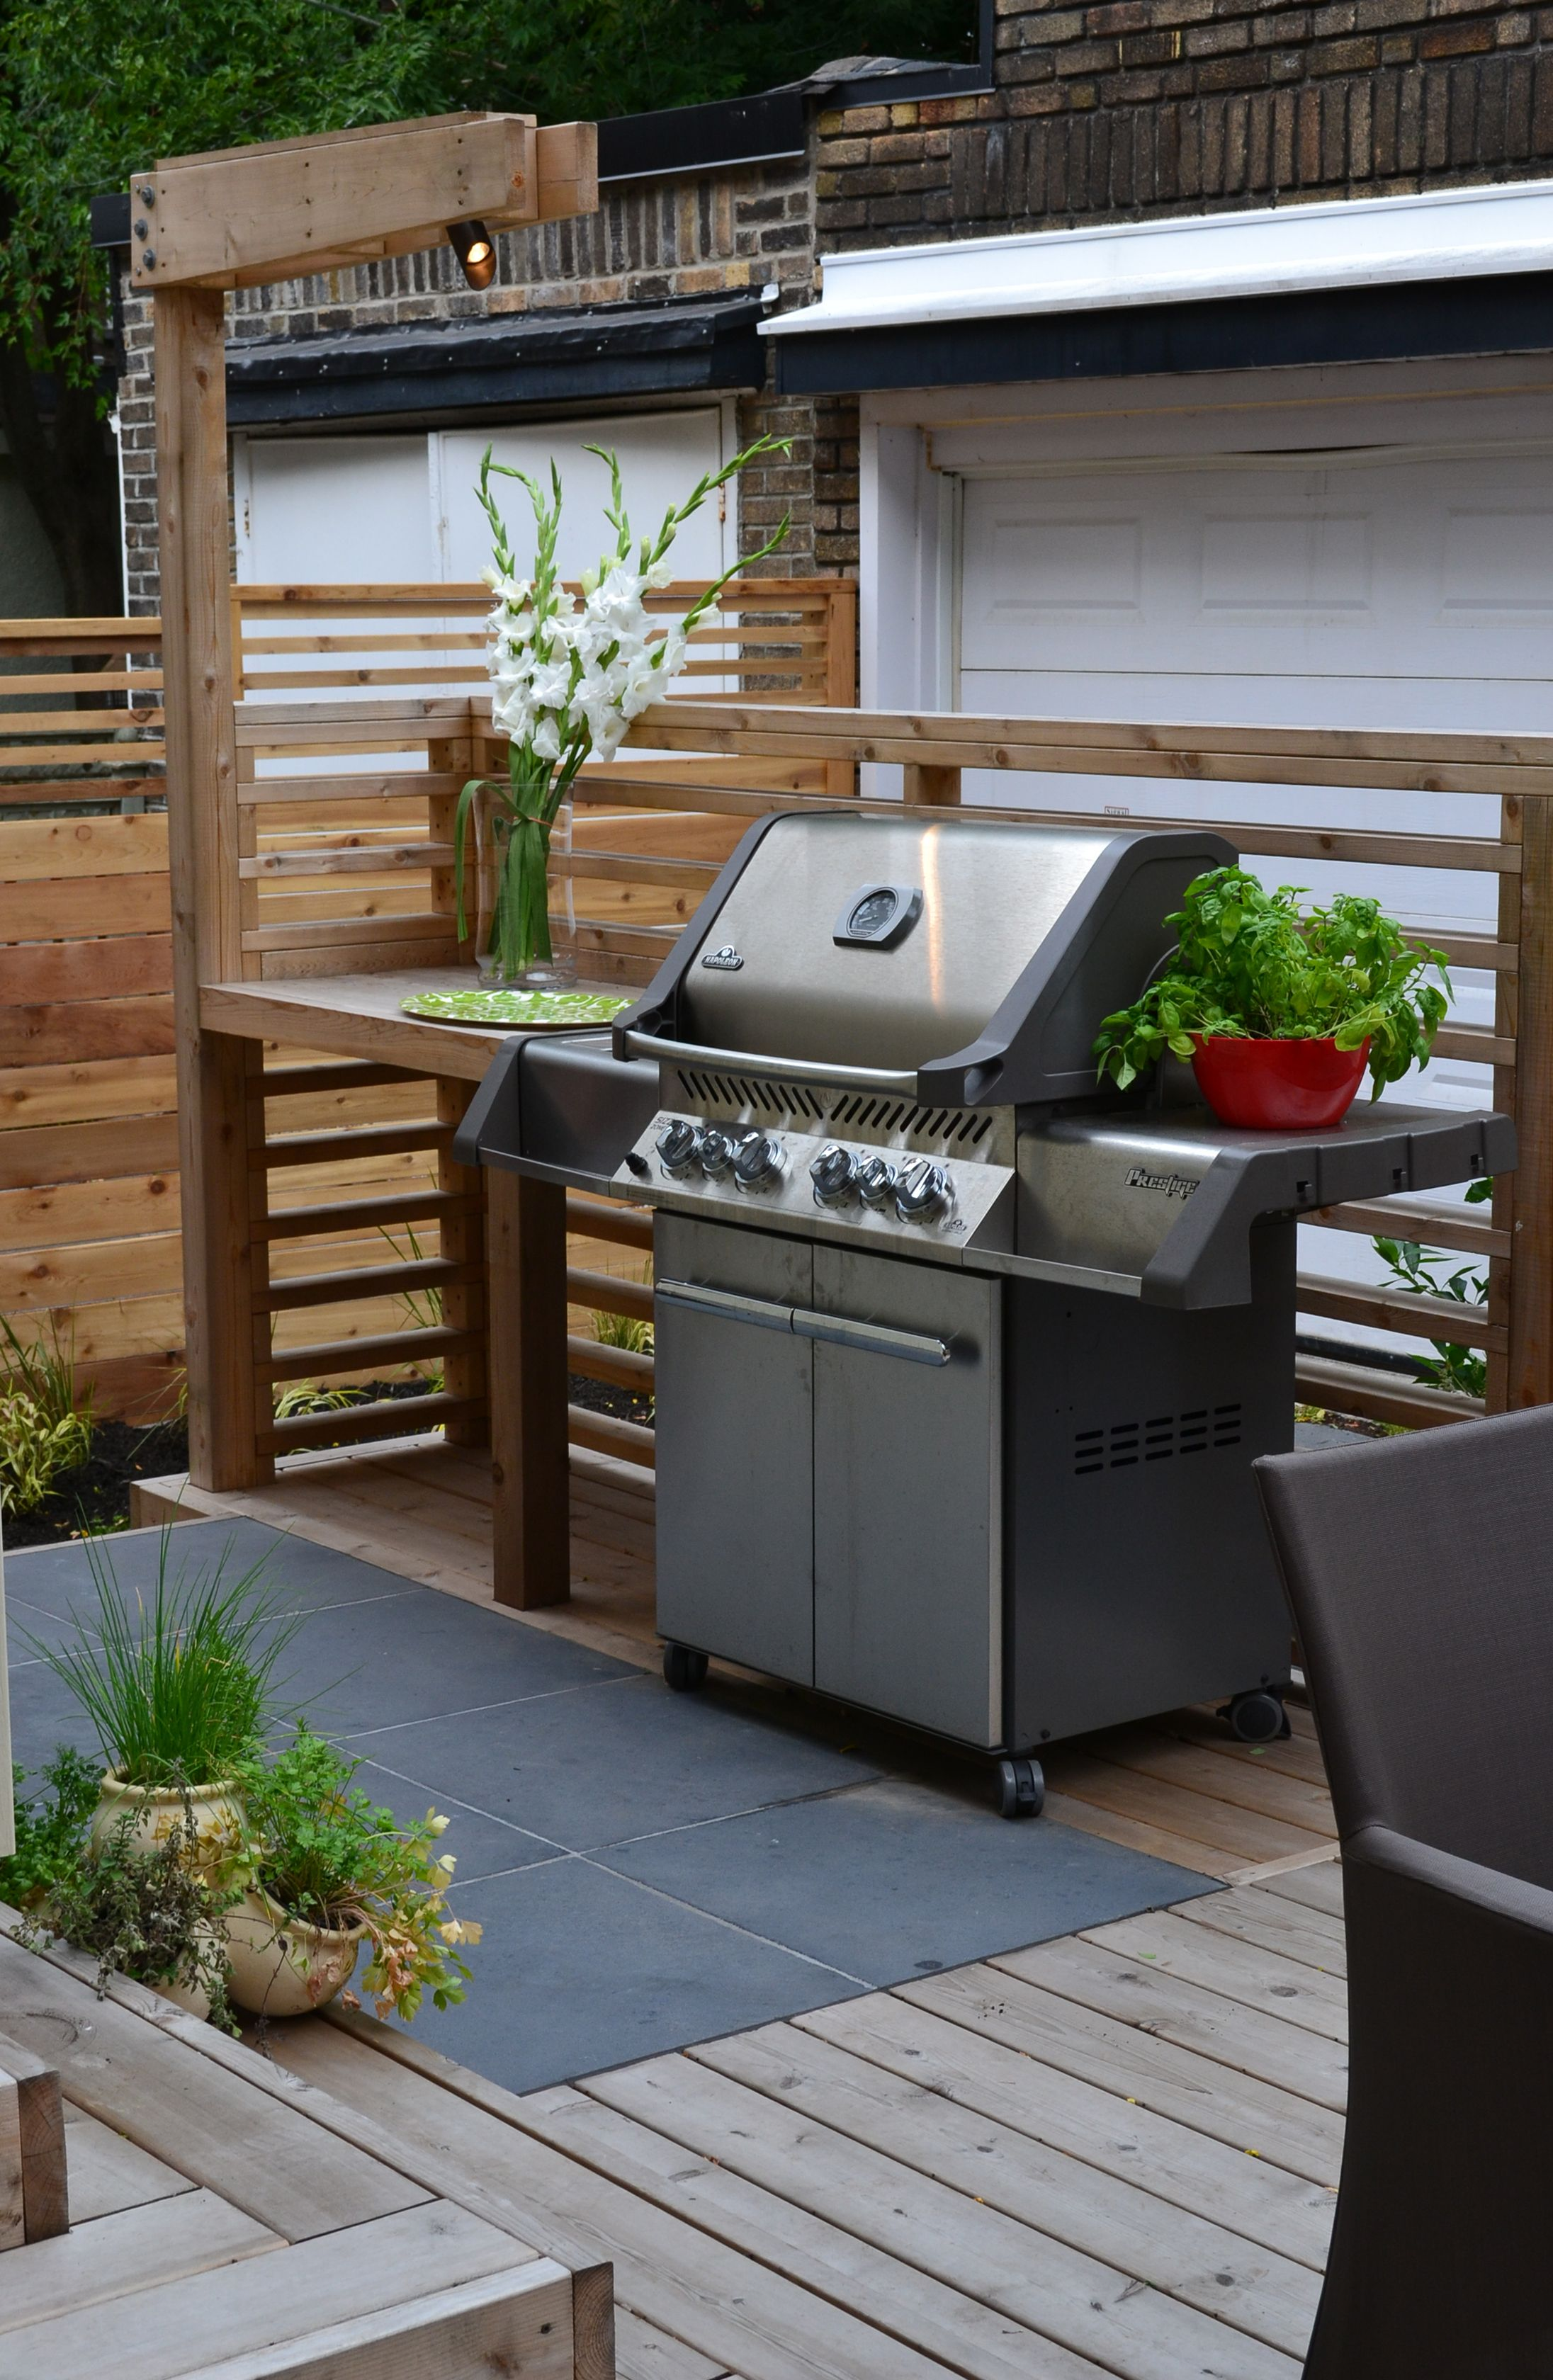 Spa Sur Terrasse Coin Bbq Simon Leclerc Deck Idea 39s Pinterest